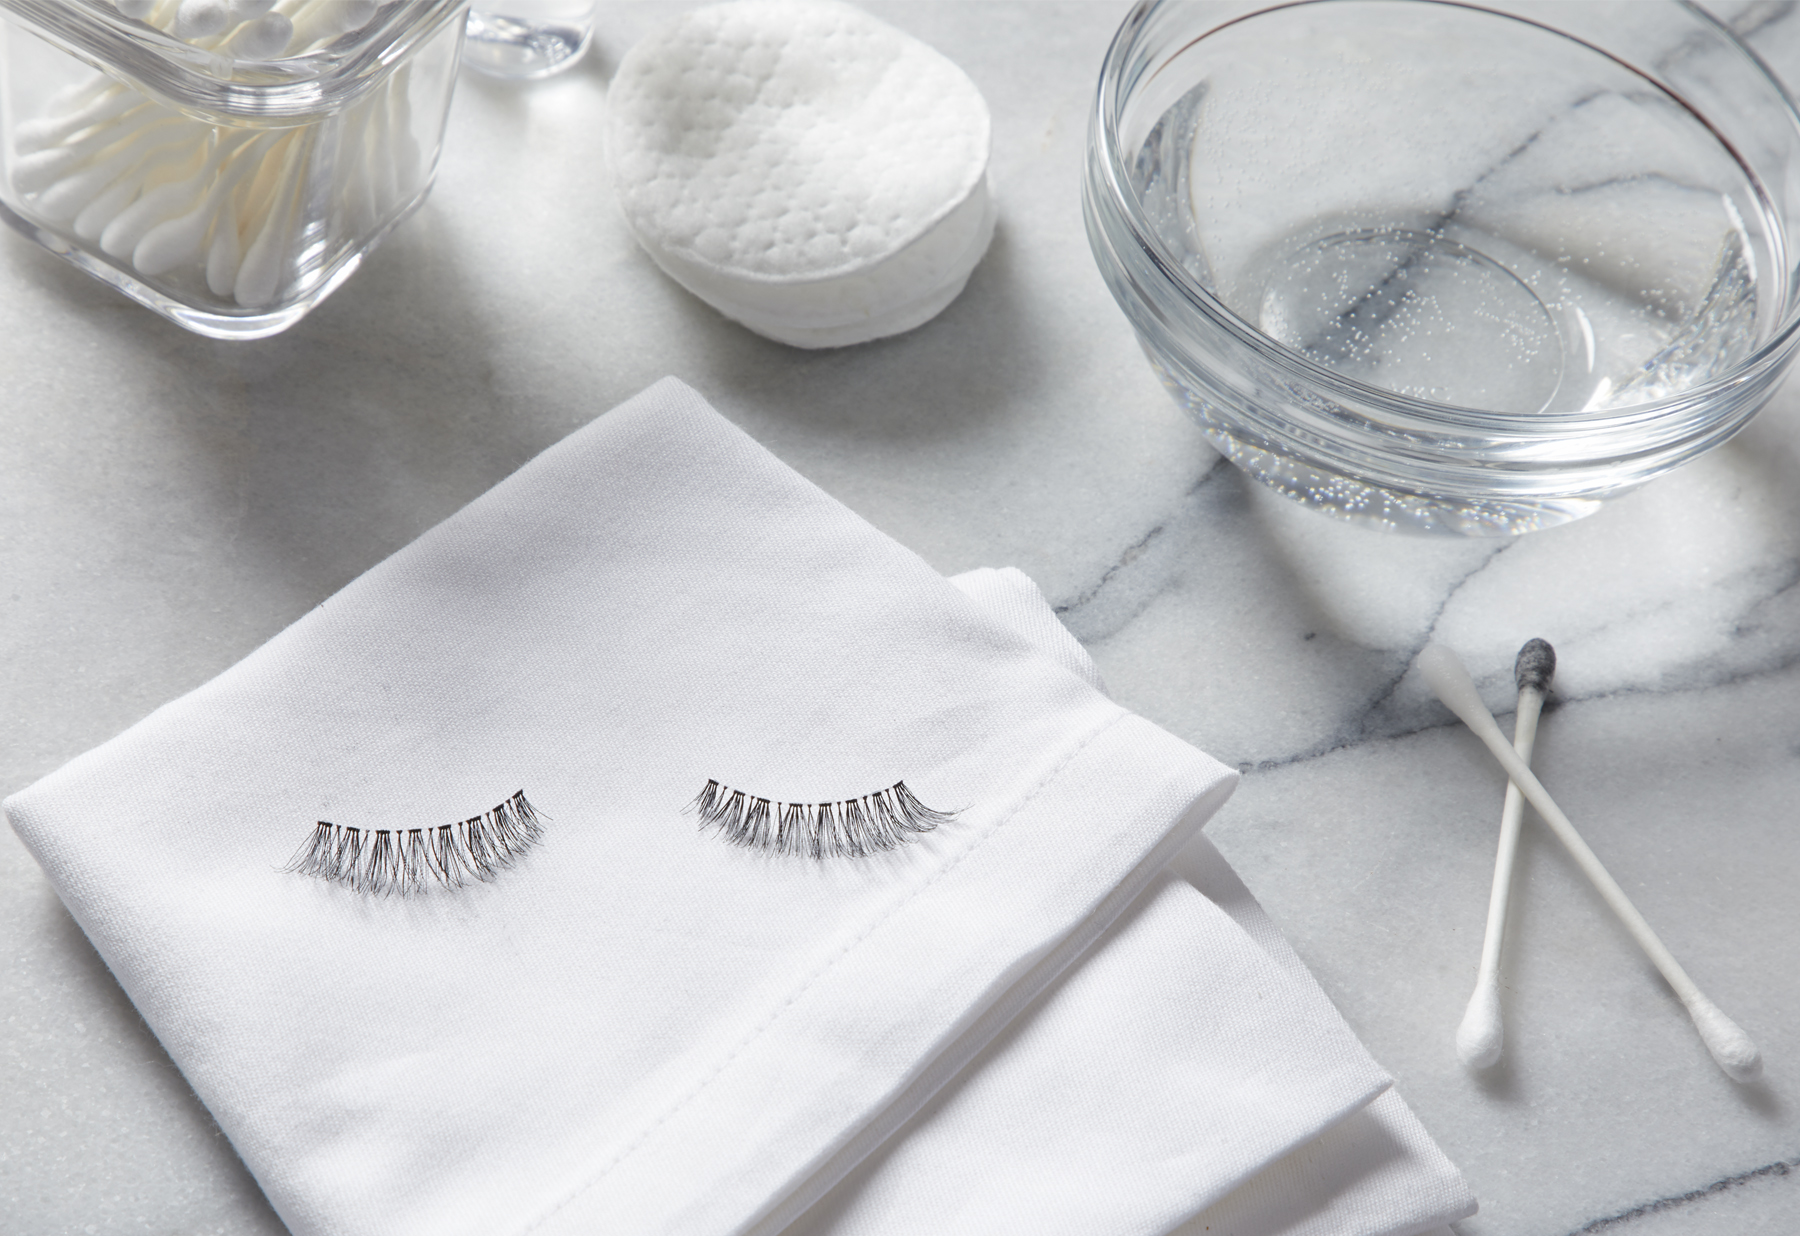 How to Clean False Eyelashes the Right Way